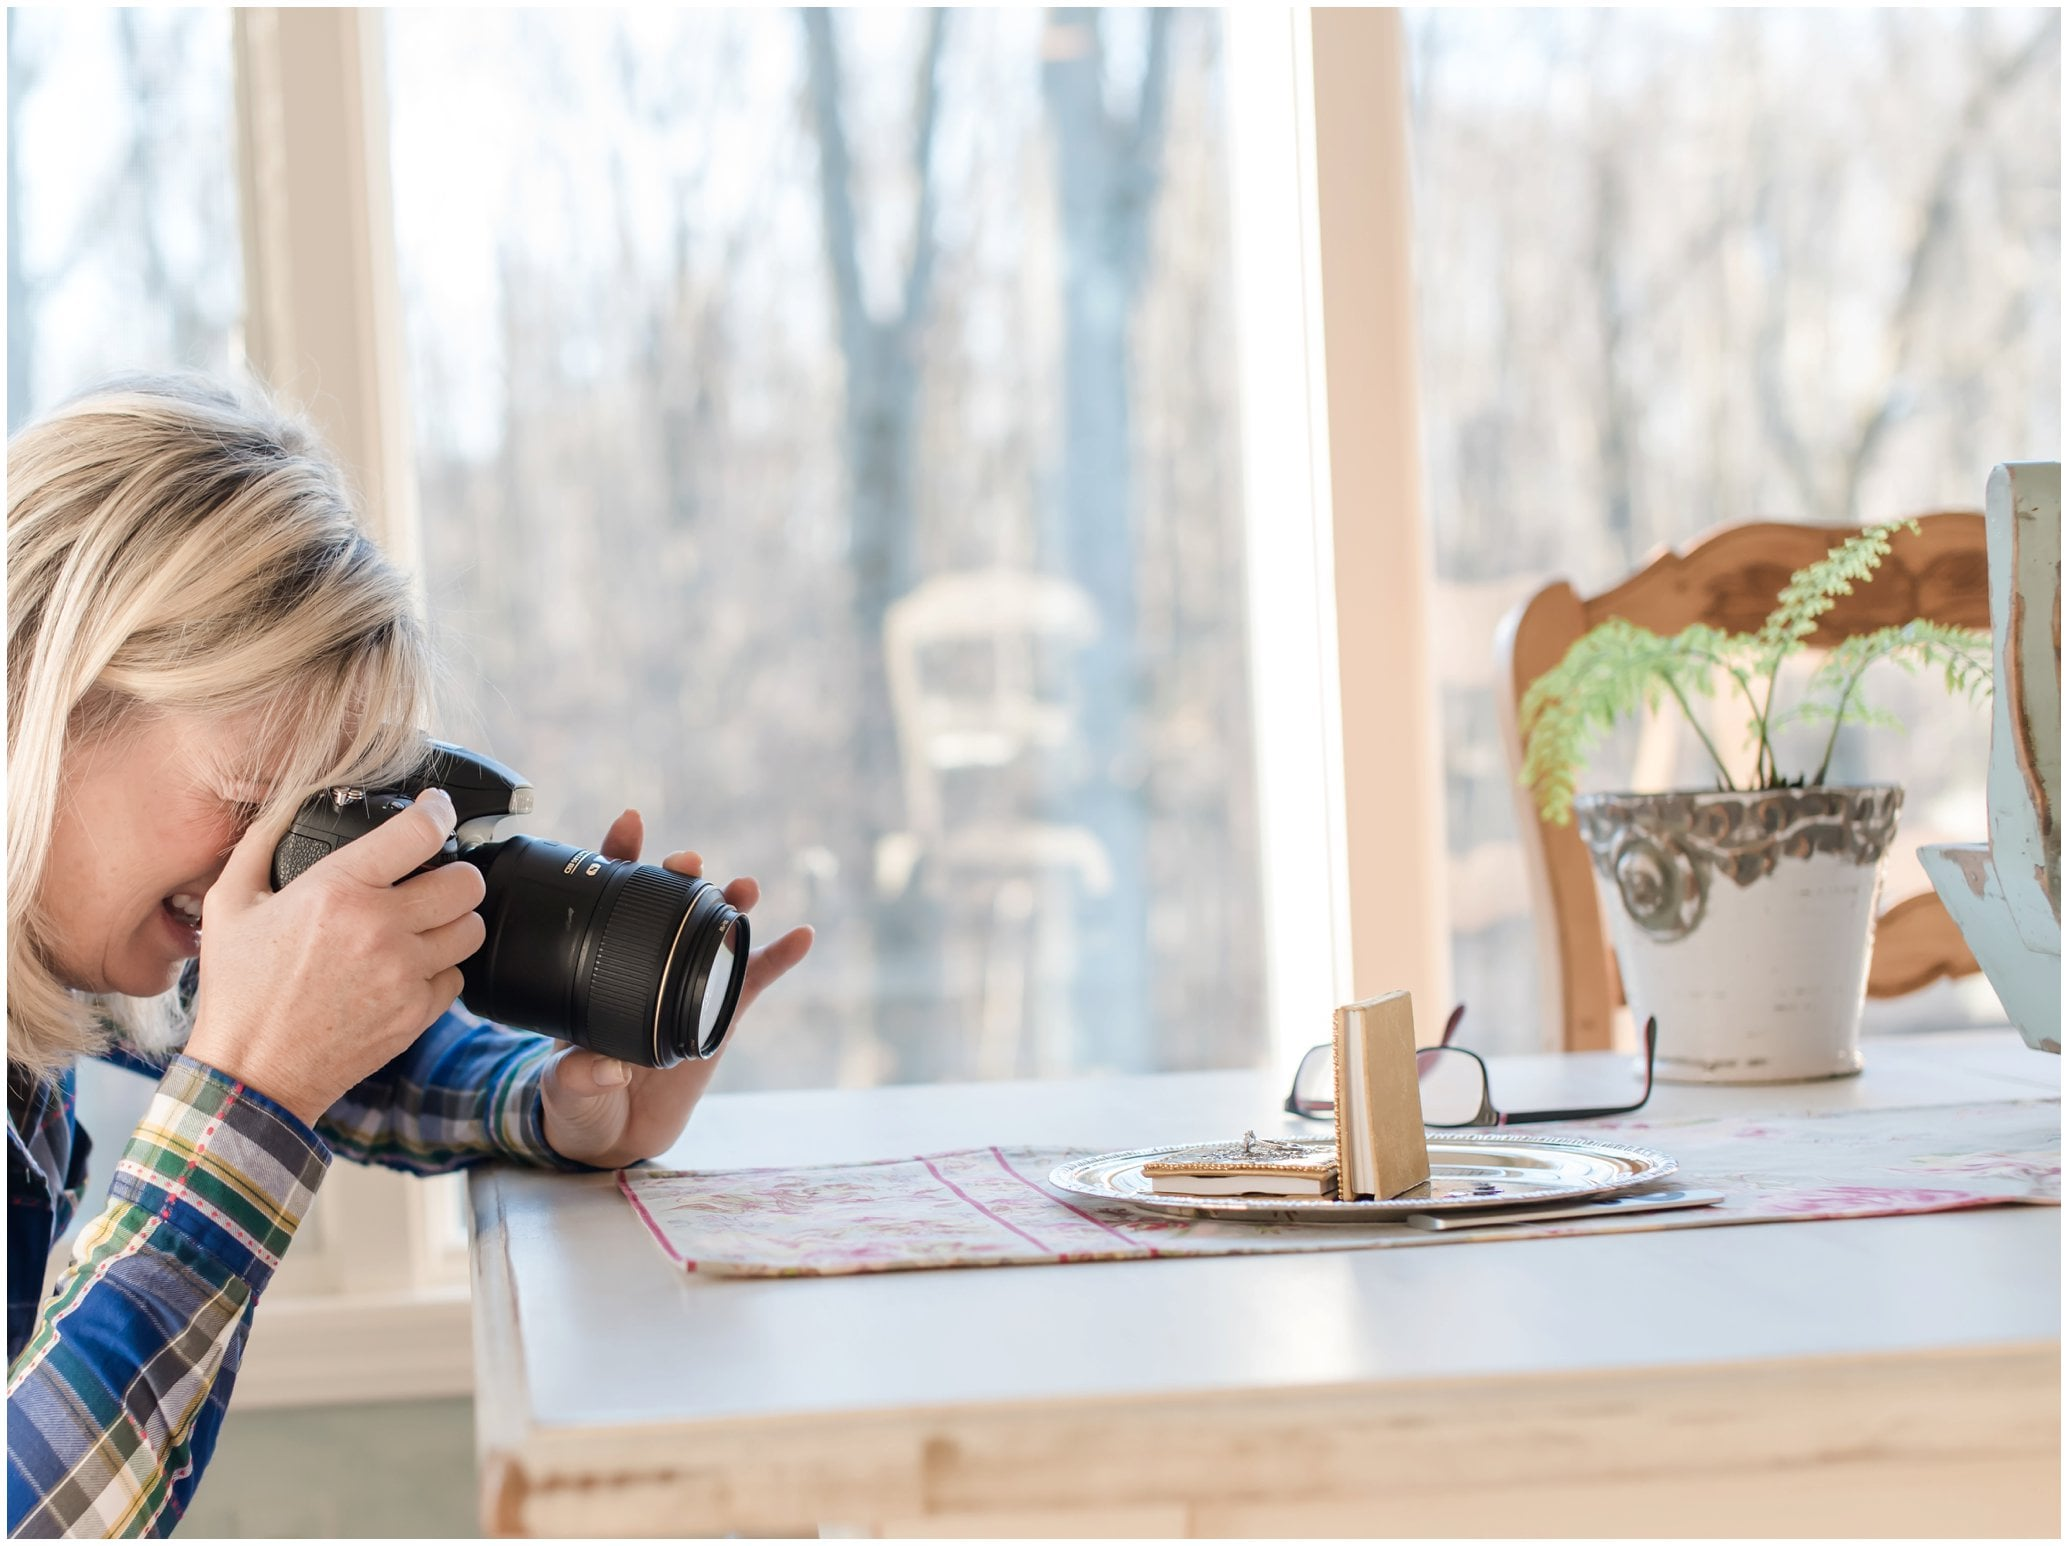 Here I am using some beautiful natural light and setting up the ring shot, using my Nikon 105mm 2.8 macro lens.